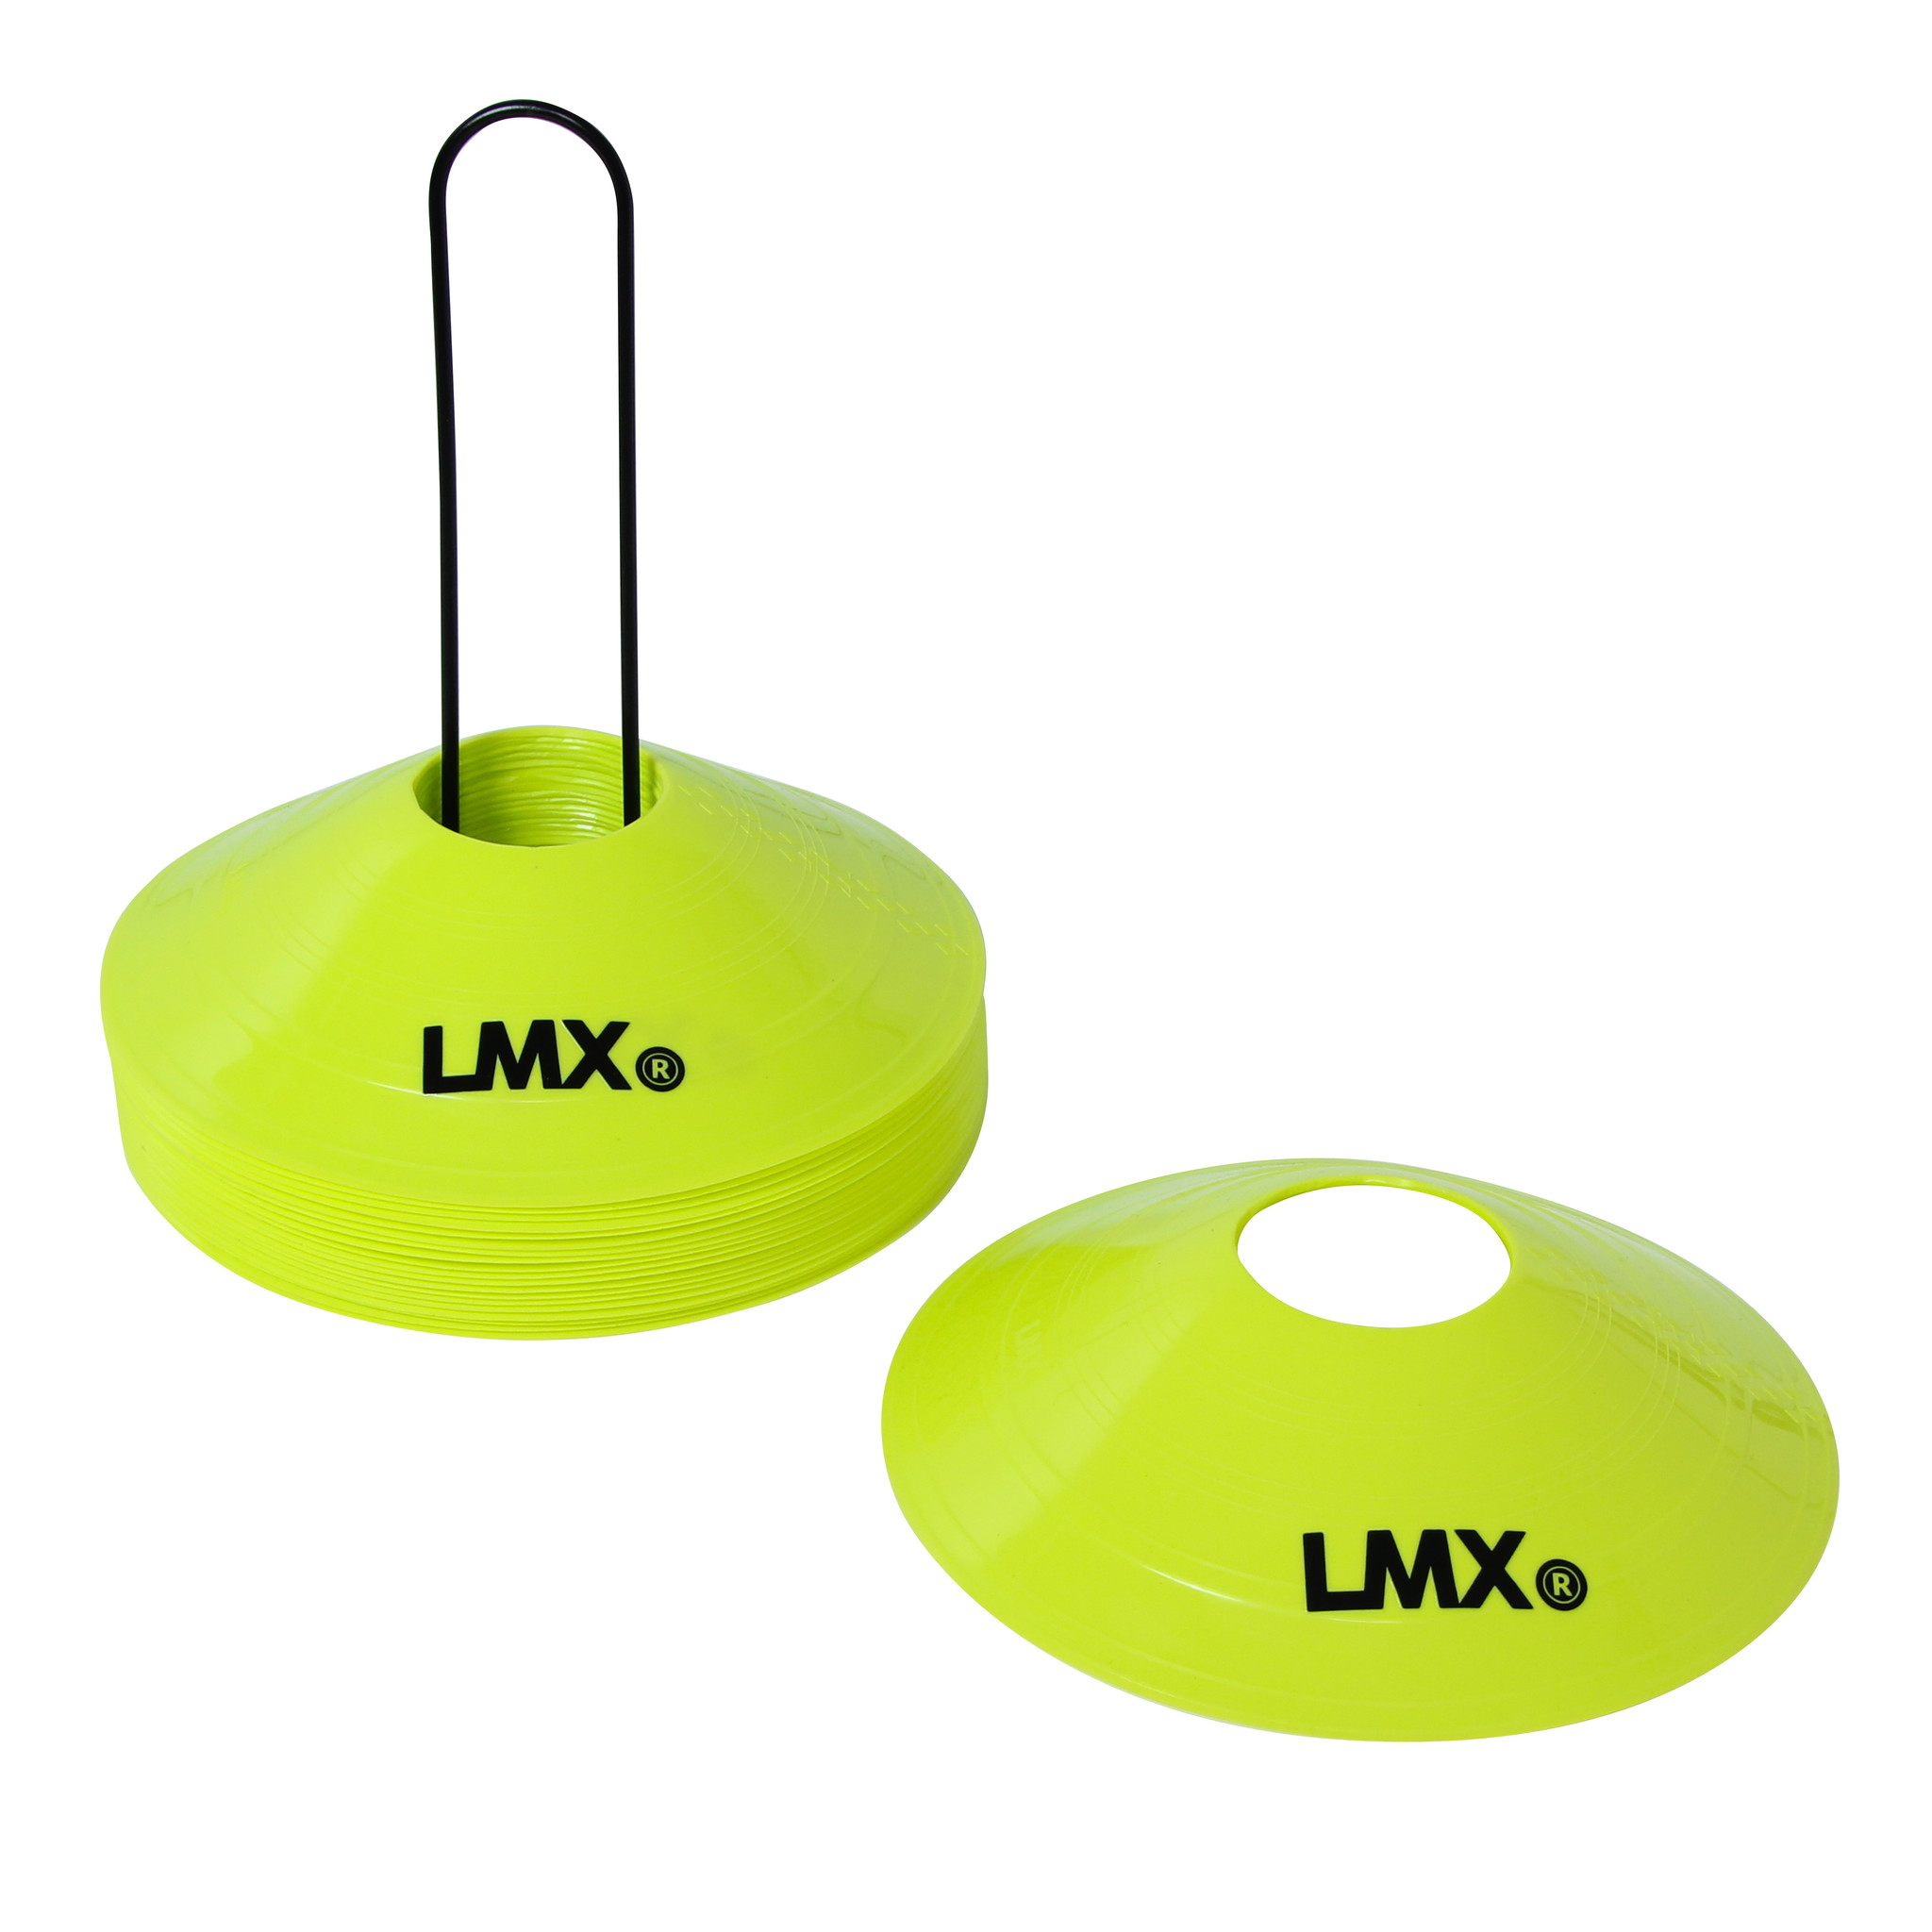 LMX.® LMX1275 LMX. Cones. 20 pcs with rack (yellow)